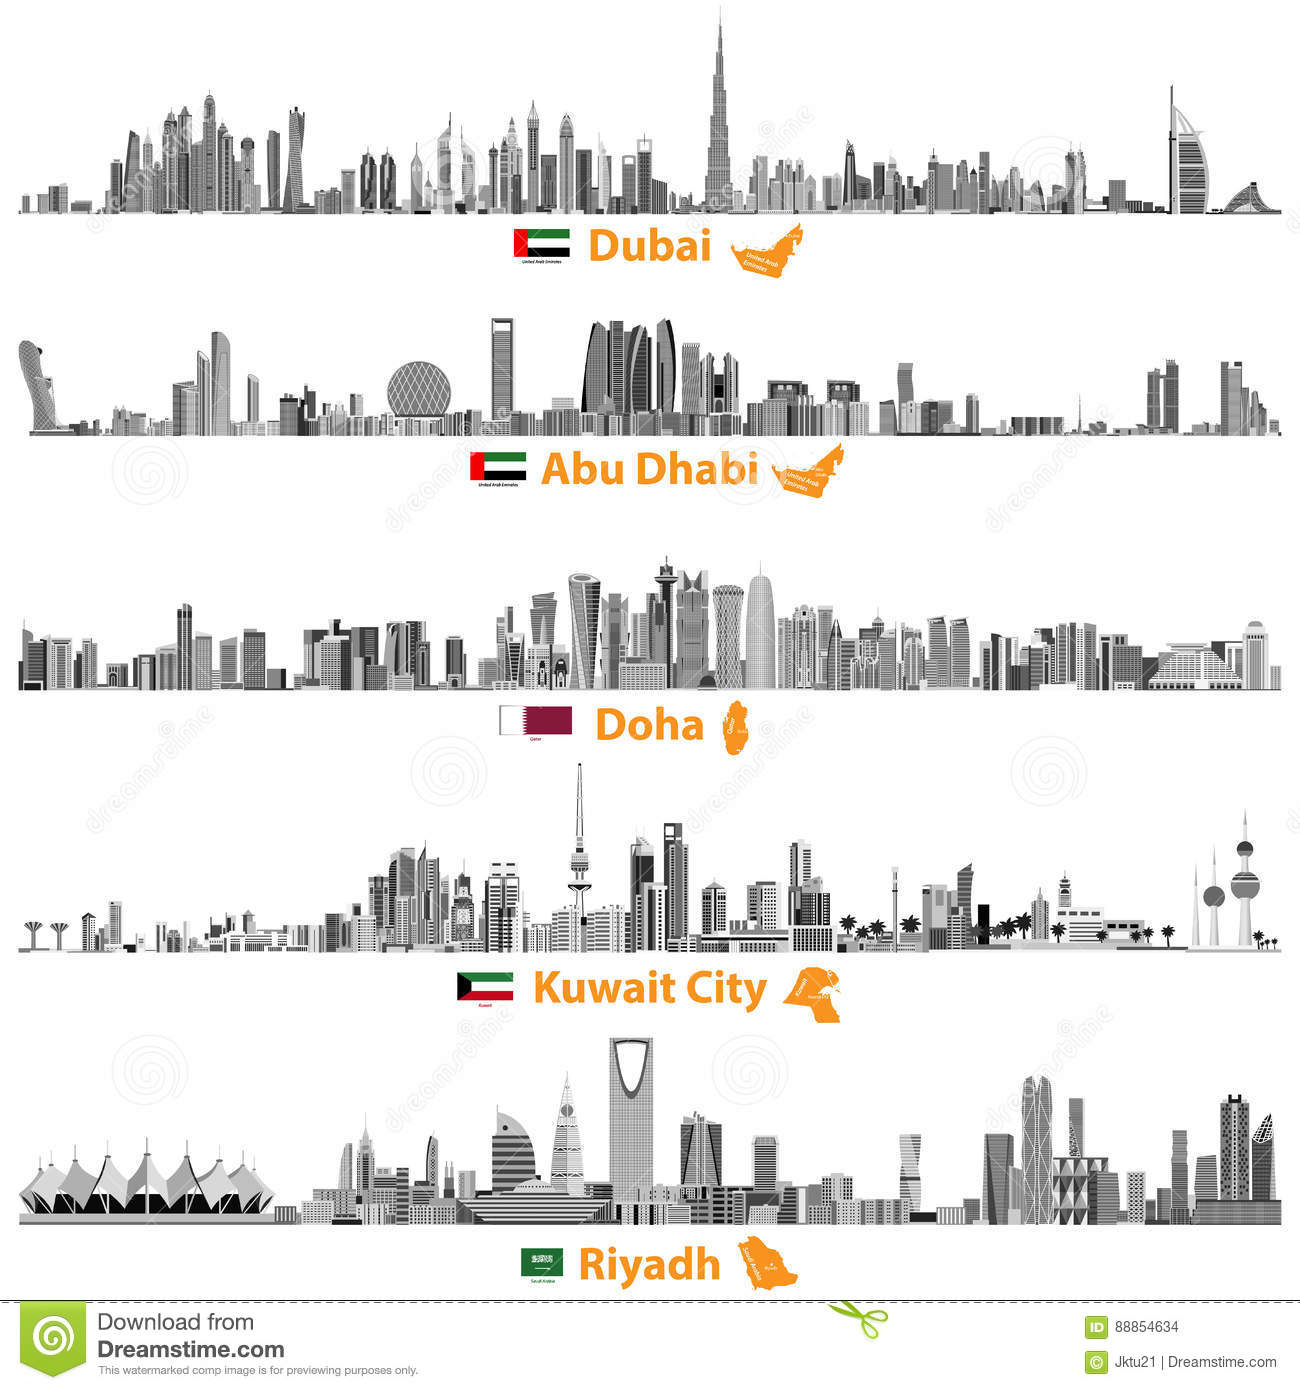 20 Top-Rated Tourist Attractions in Dubai